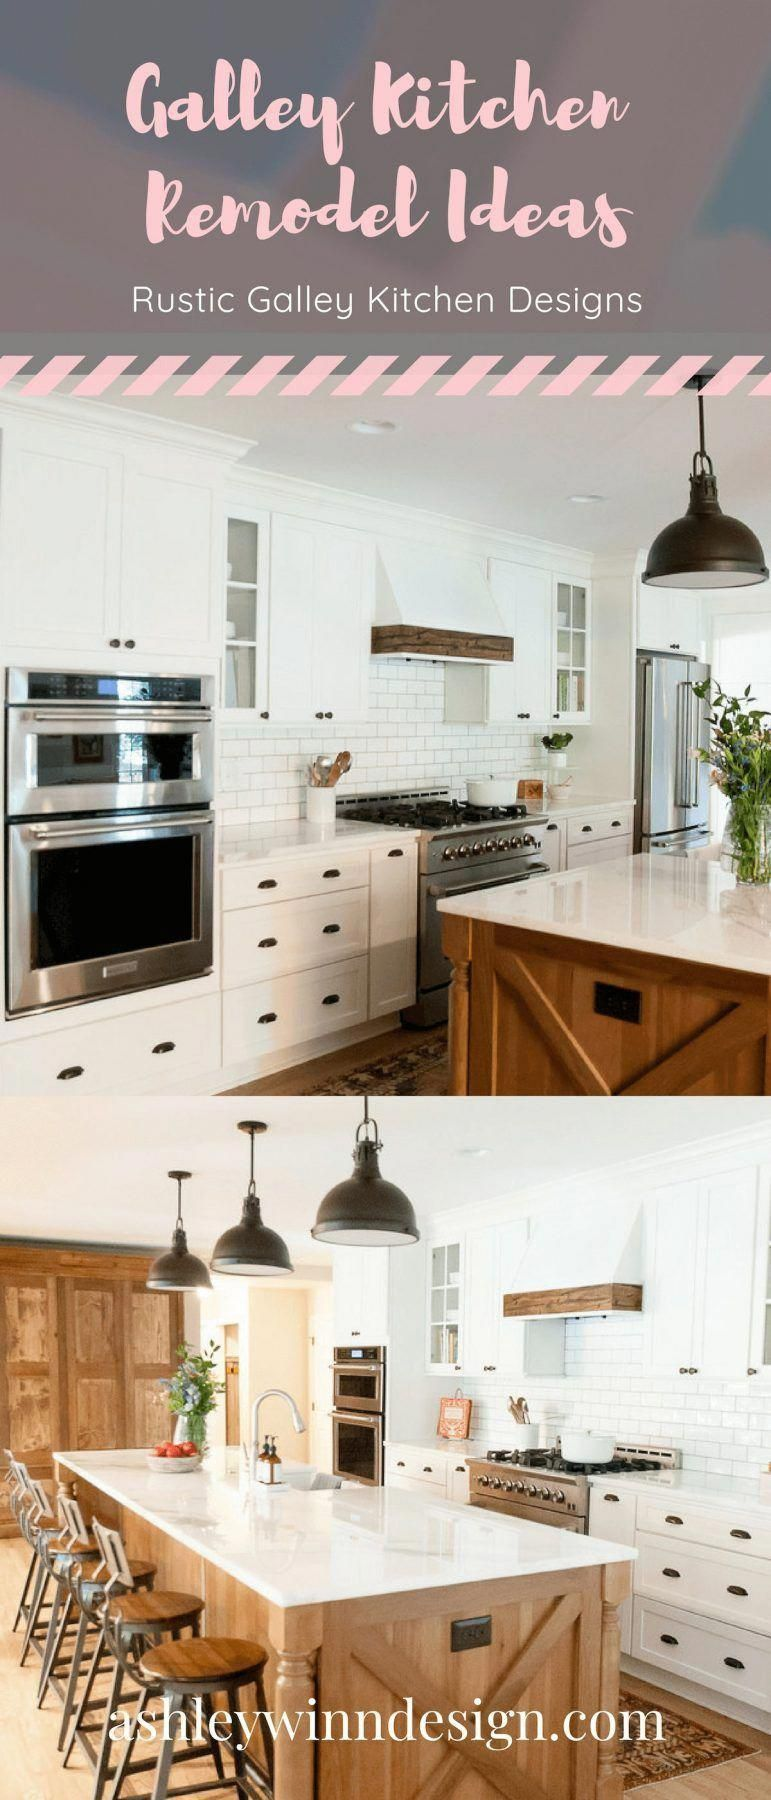 29 Awesome Galley Kitchen Remodel Ideas (A Guide to Makeover Your Kitchen) #onabudget #small #beforeandafter #fixerupper #ideas #narrow #layout #joannagaines #open #island #KitchenIdeasToDecorate #ikeagalleykitchen